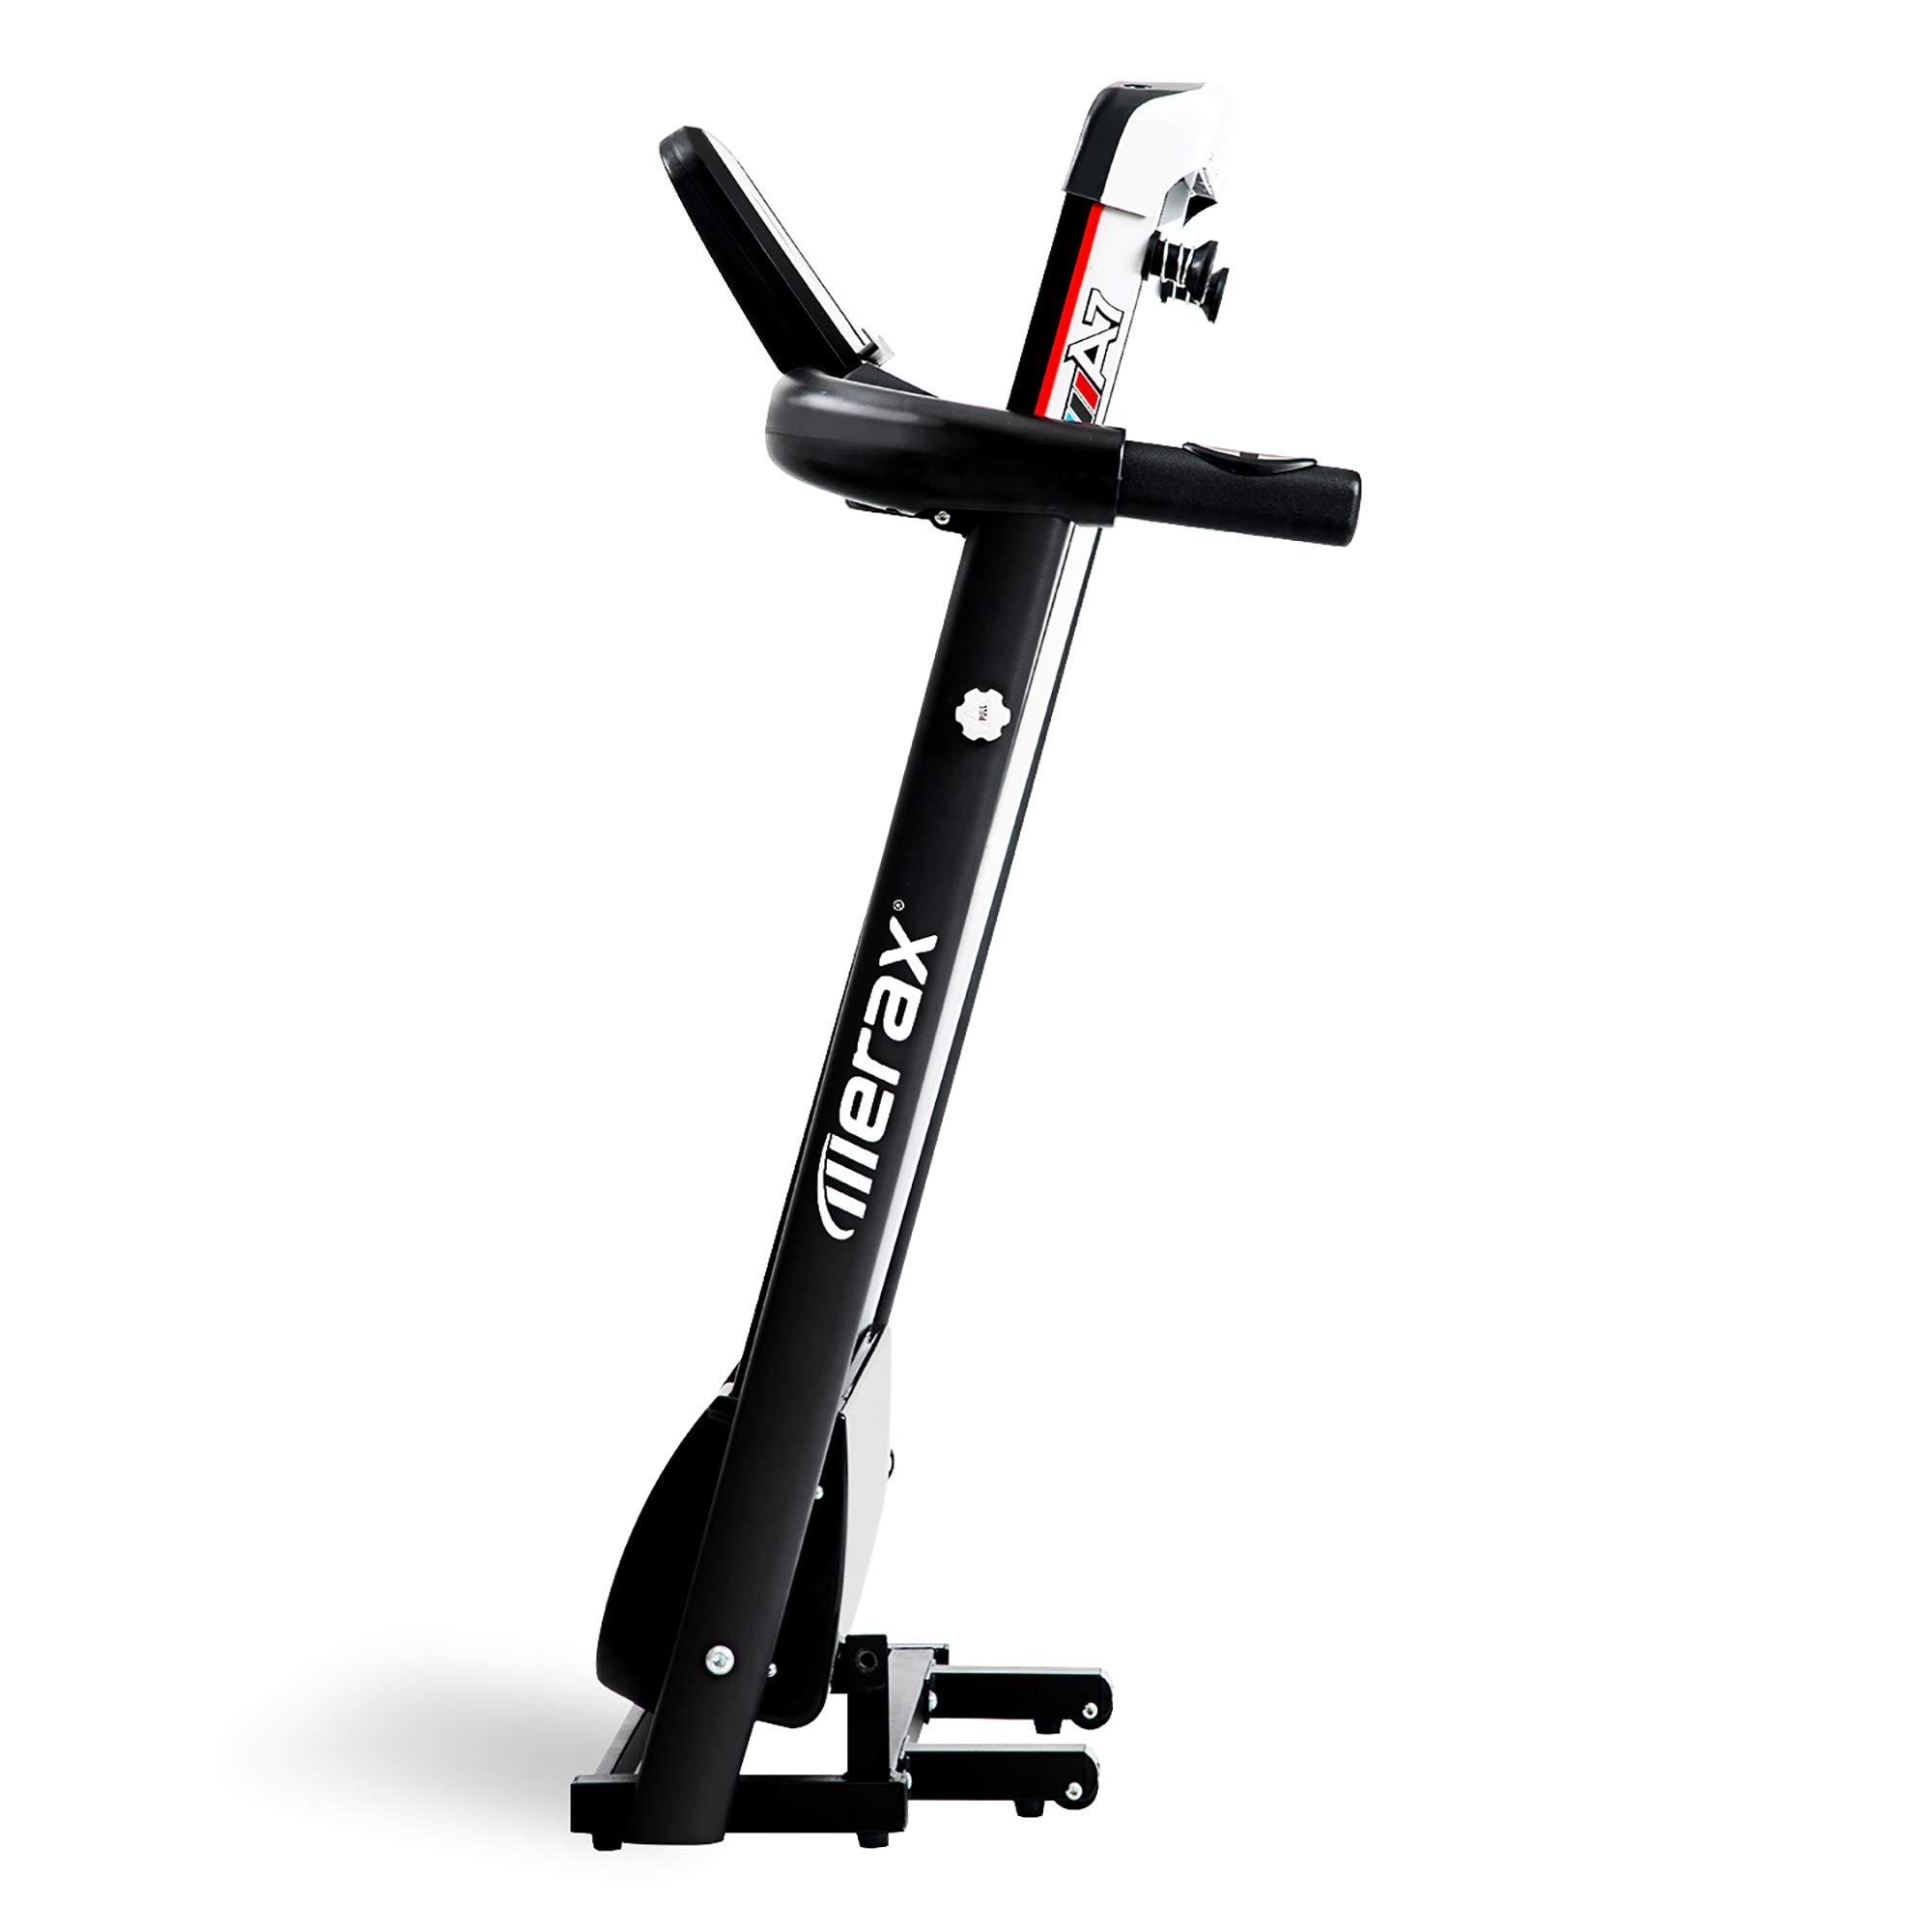 Merax Folding Electric Treadmill Easy Assembly Motorized Power Running Machine Fitness by Merax (Image #5)